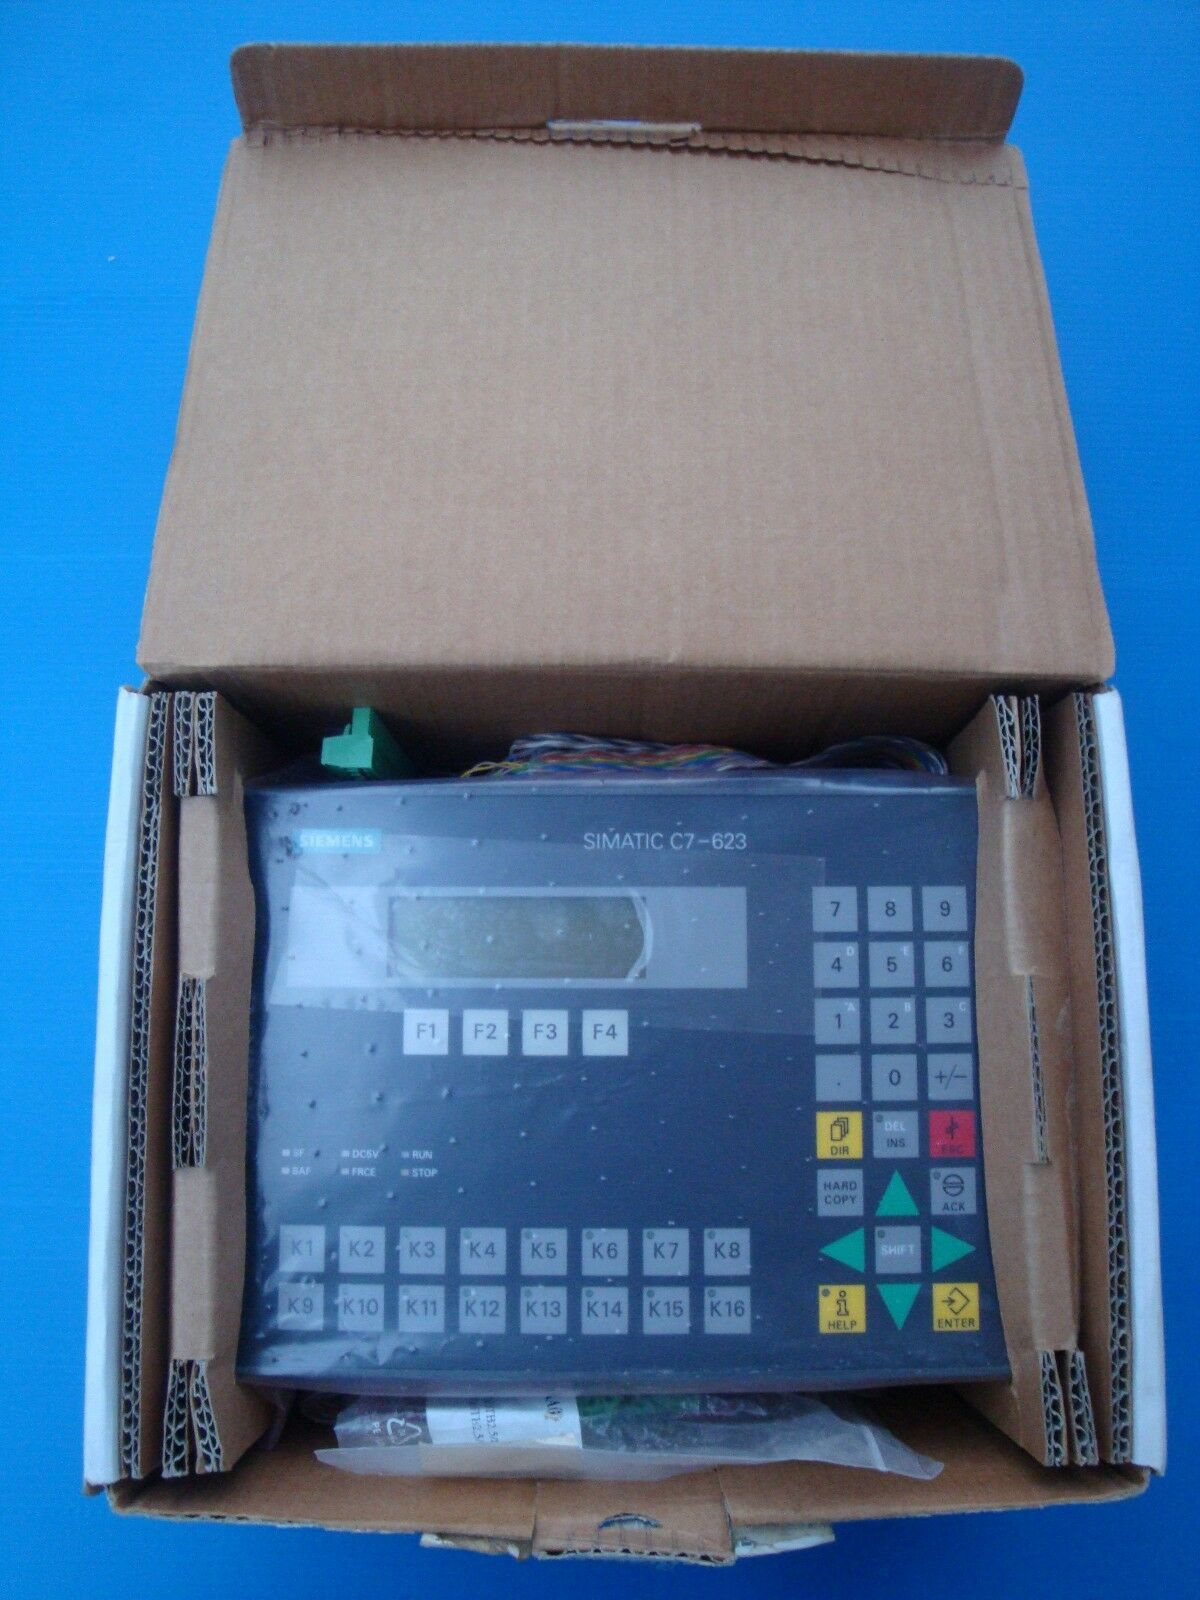 SIEMENS SIMATIC OPERATOR INTERFACE PANEL S7/300 C7-623 6ES7623-1AE00-0AE3